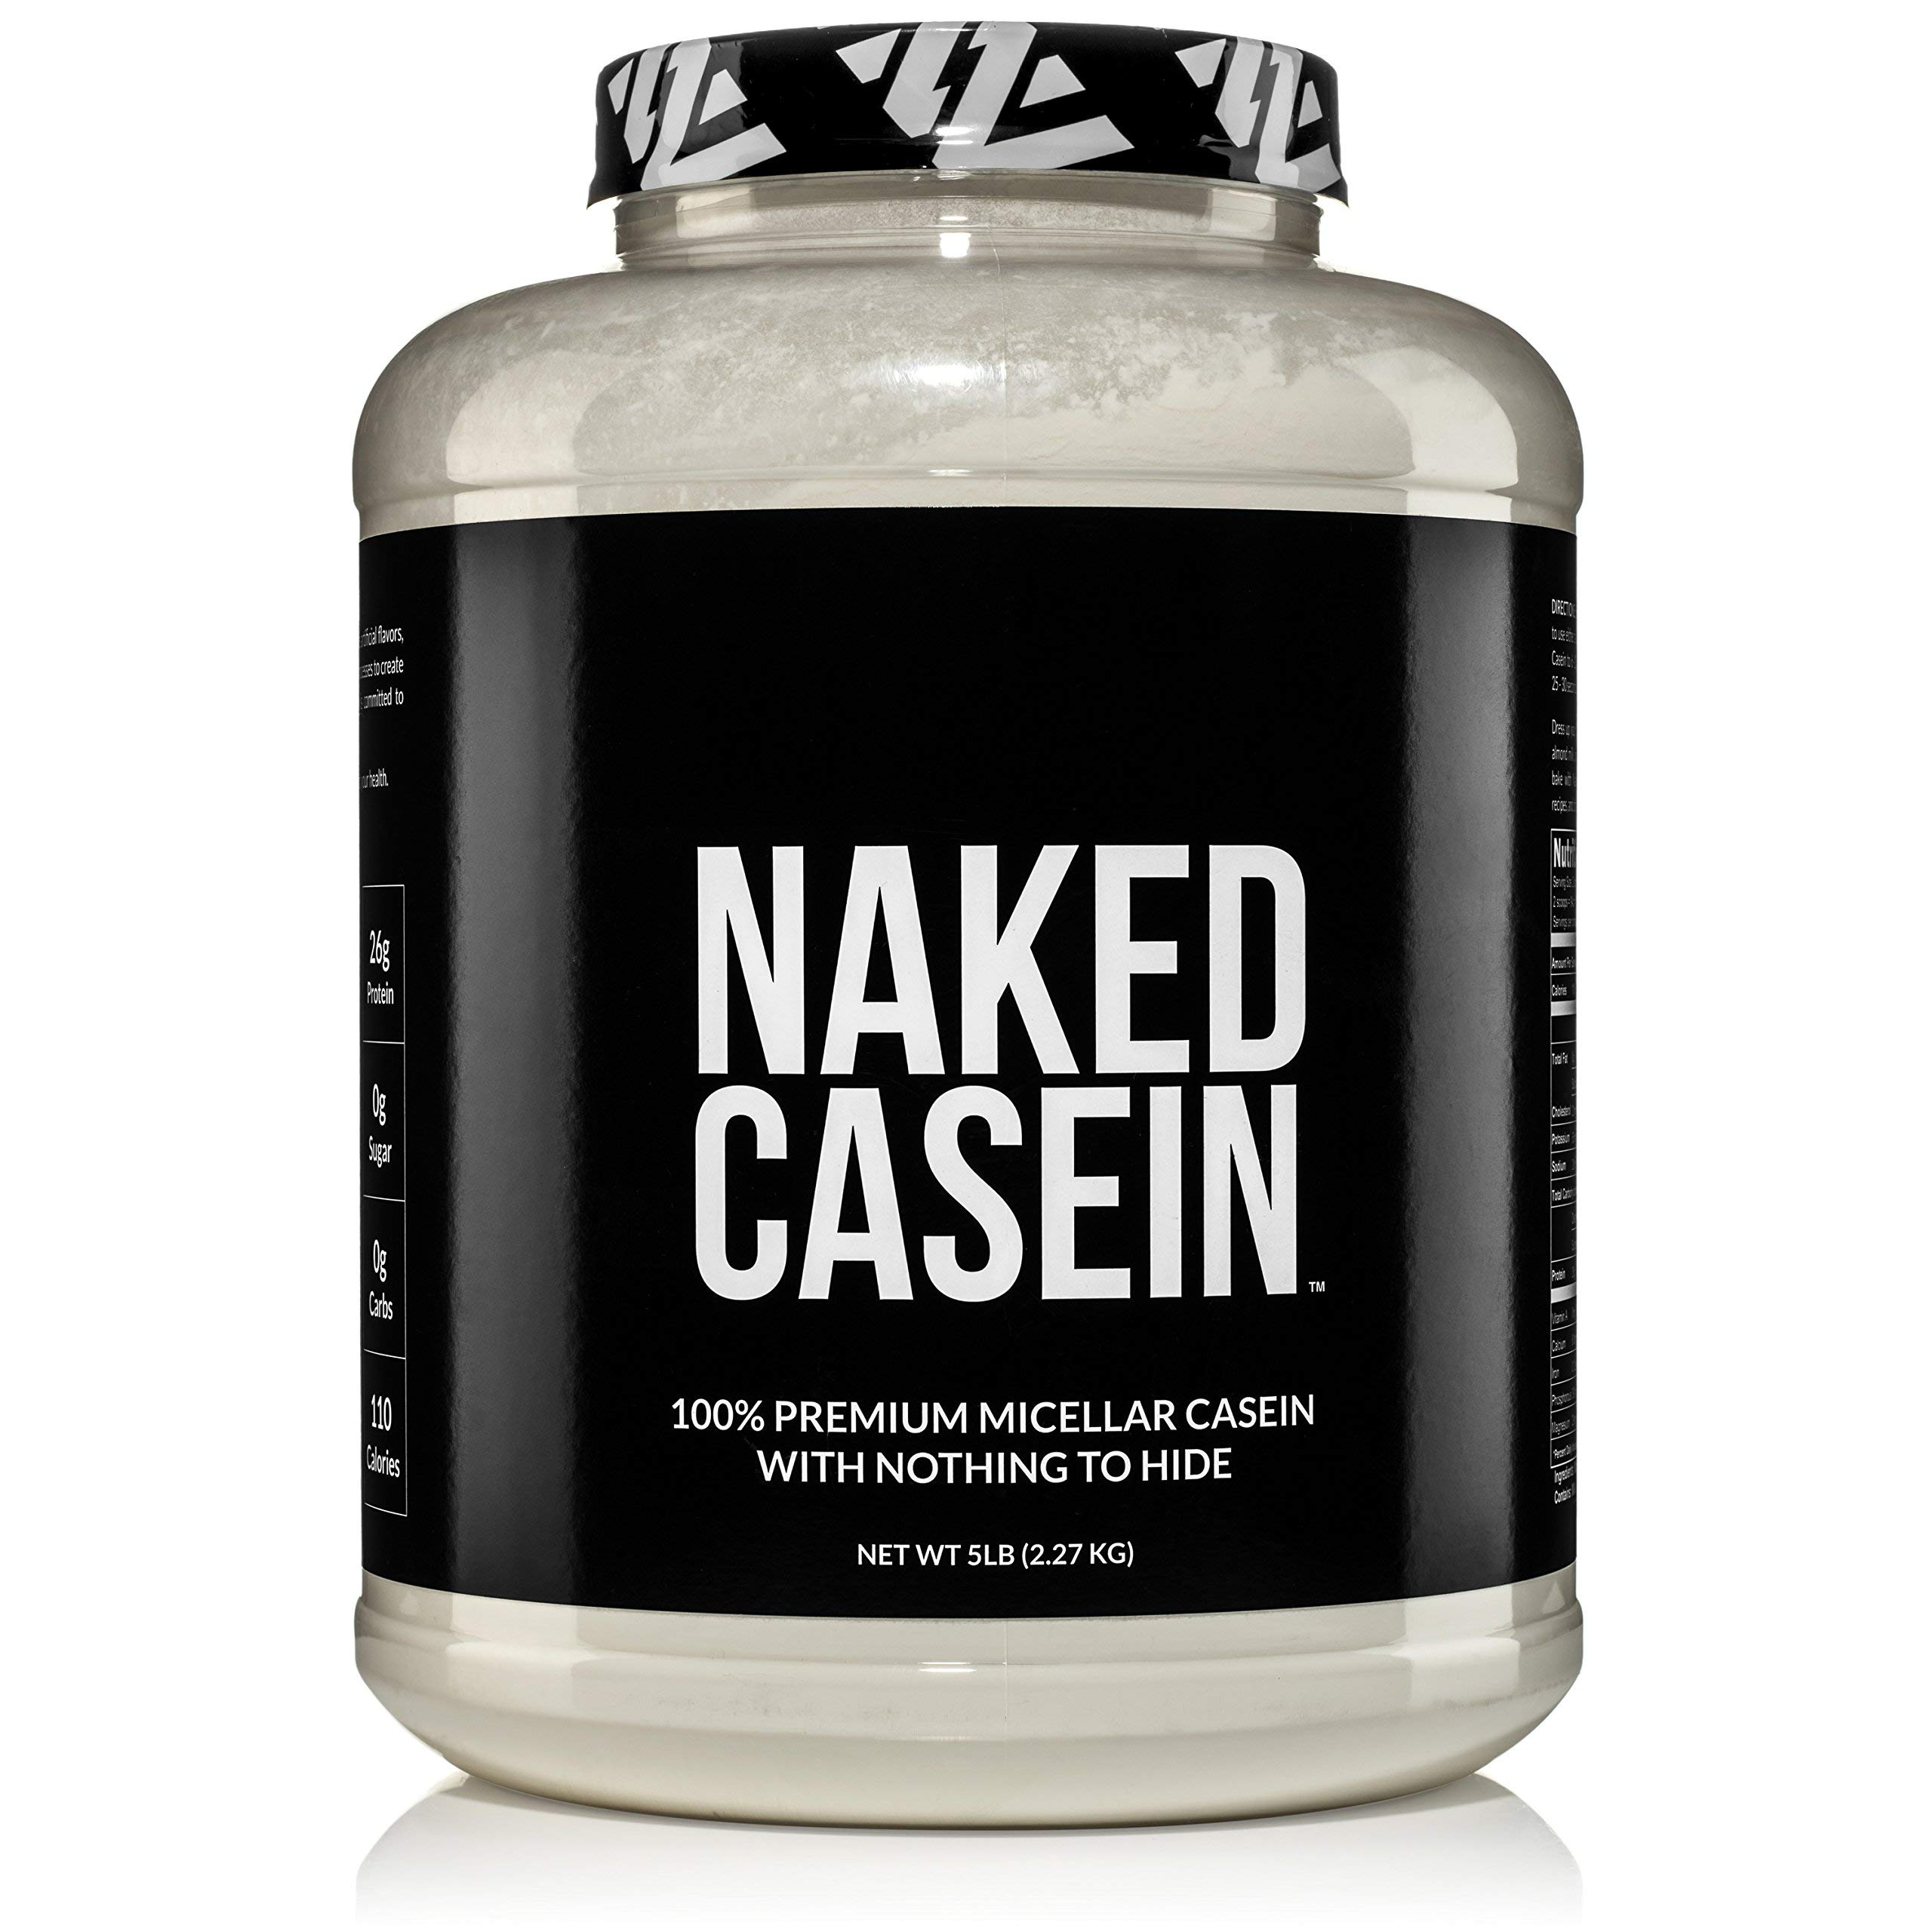 Naked Casein - 5LB 100% Micellar Casein Protein Powder from US Farms - Bulk, GMO-Free, Gluten Free, Soy Free, Preservative Free - Stimulate Muscle Growth - Enhance Recovery - 76 Servings by NAKED nutrition